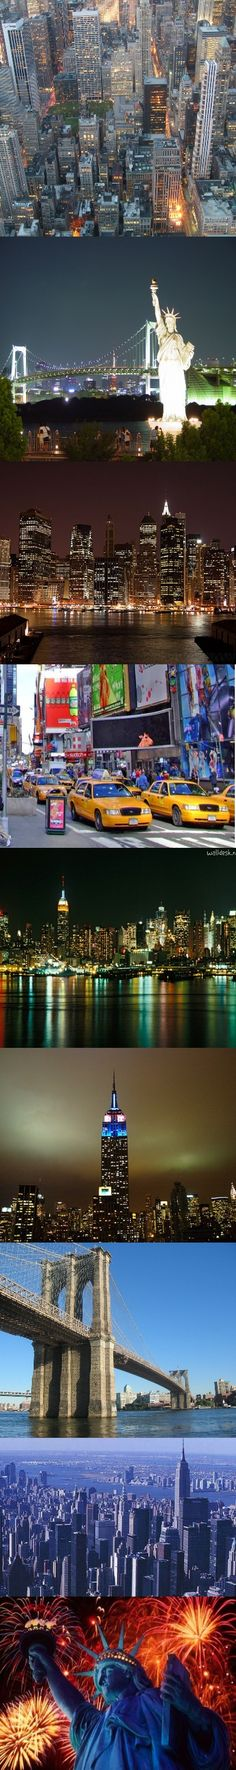 ✈✈✈ They are giving away free flights to NEW YORK, I really really wanna go to New York, anyone can get them => http://travel.womensinterests.org/jetblue ✈✈✈